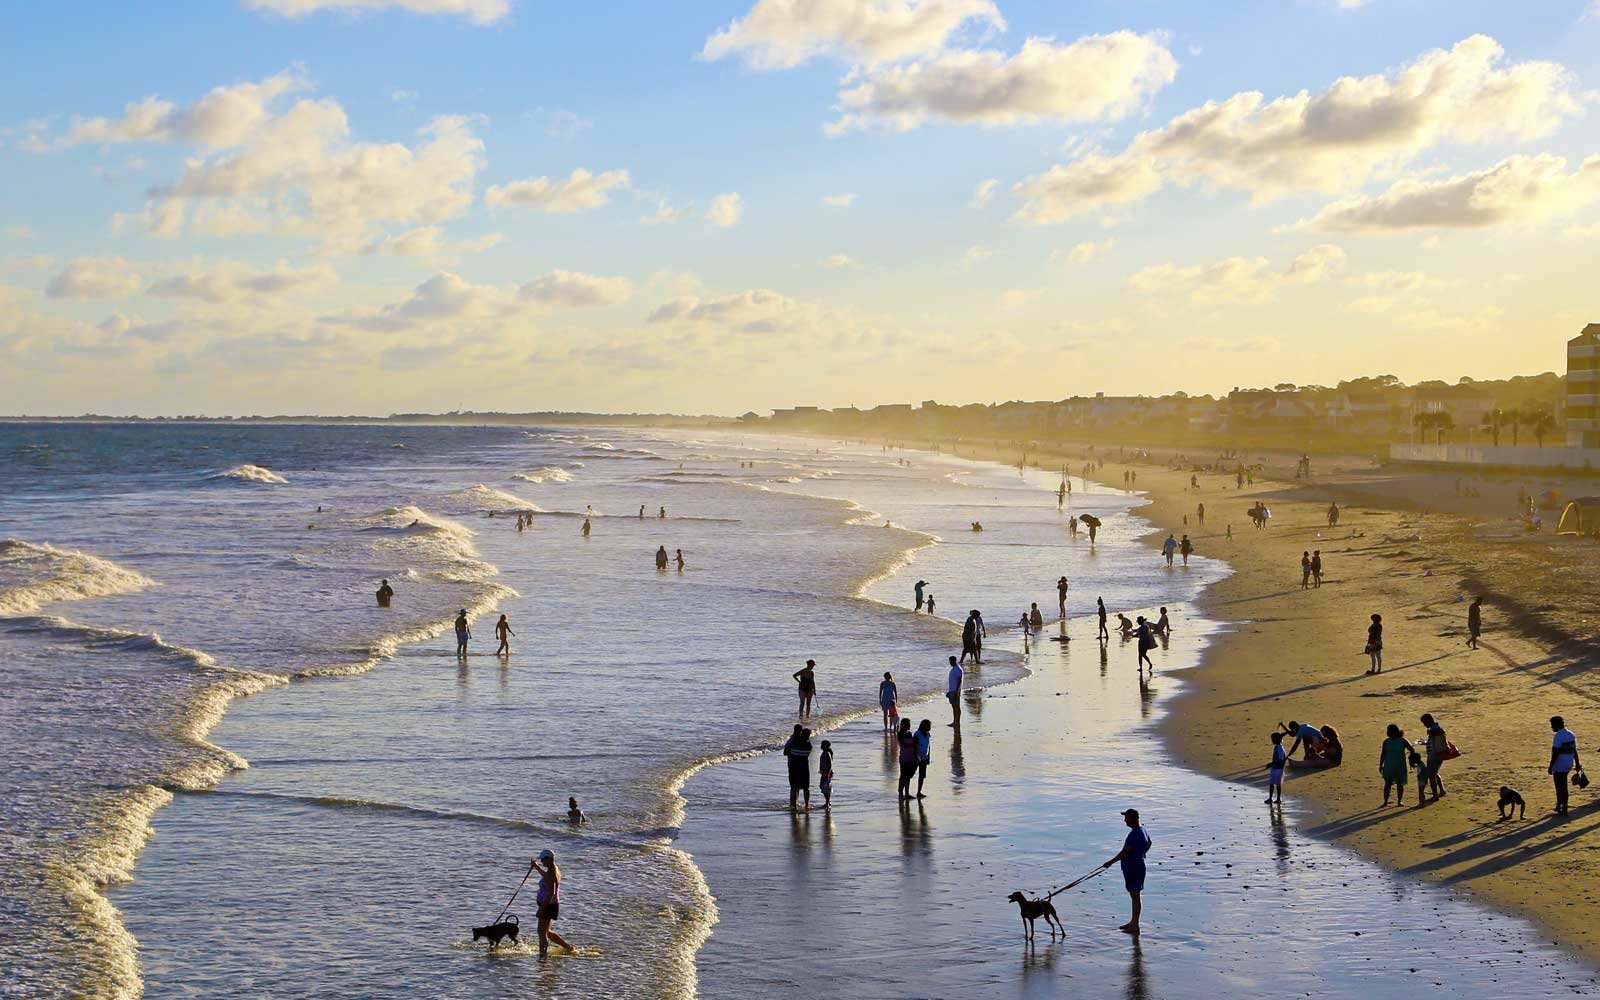 Crowd enjoying the last days of summer, Folly Beach, South Carolina